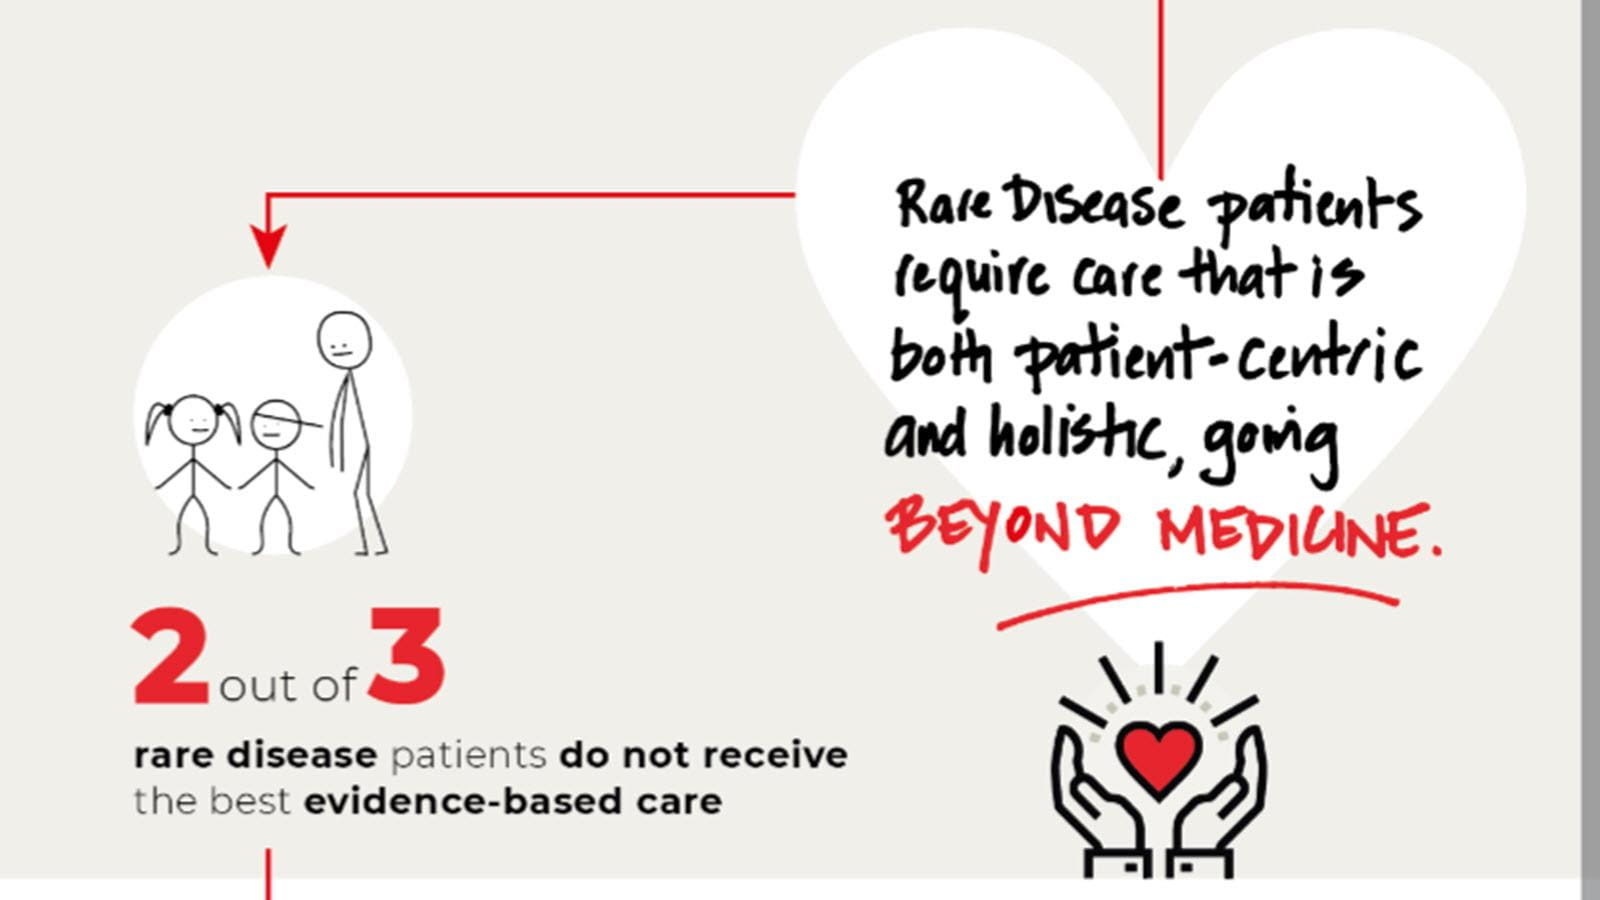 2 out of 3 rare disease patients don't get the best, evidence-based care in Asia-PAC